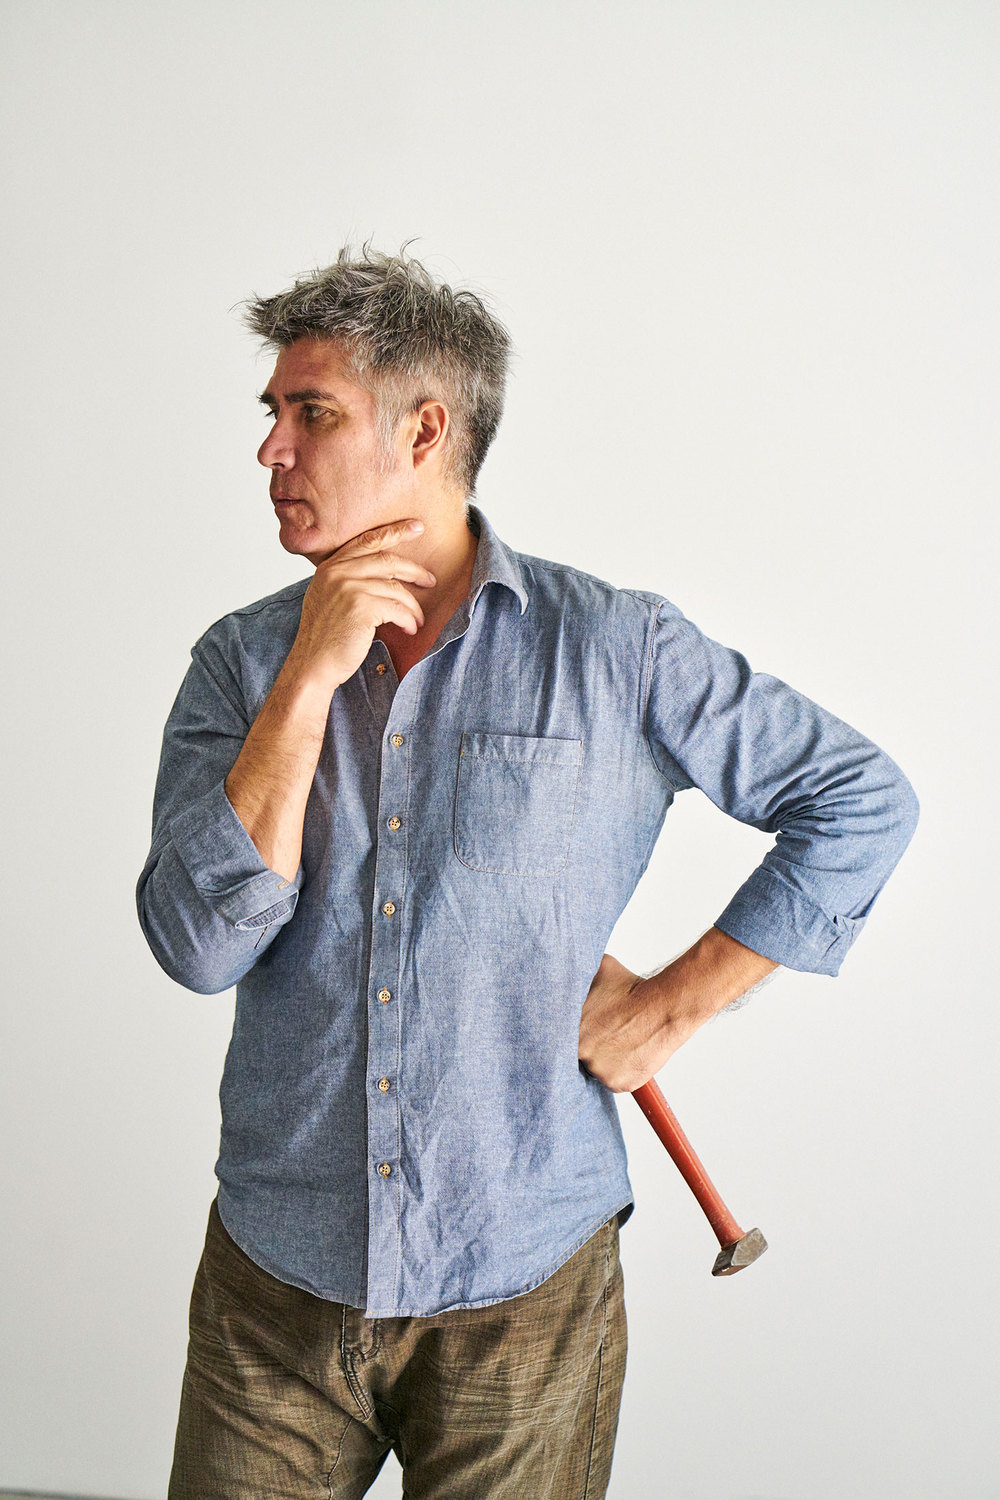 Alejandro Aravena (Photo: James Mollison/Surface)